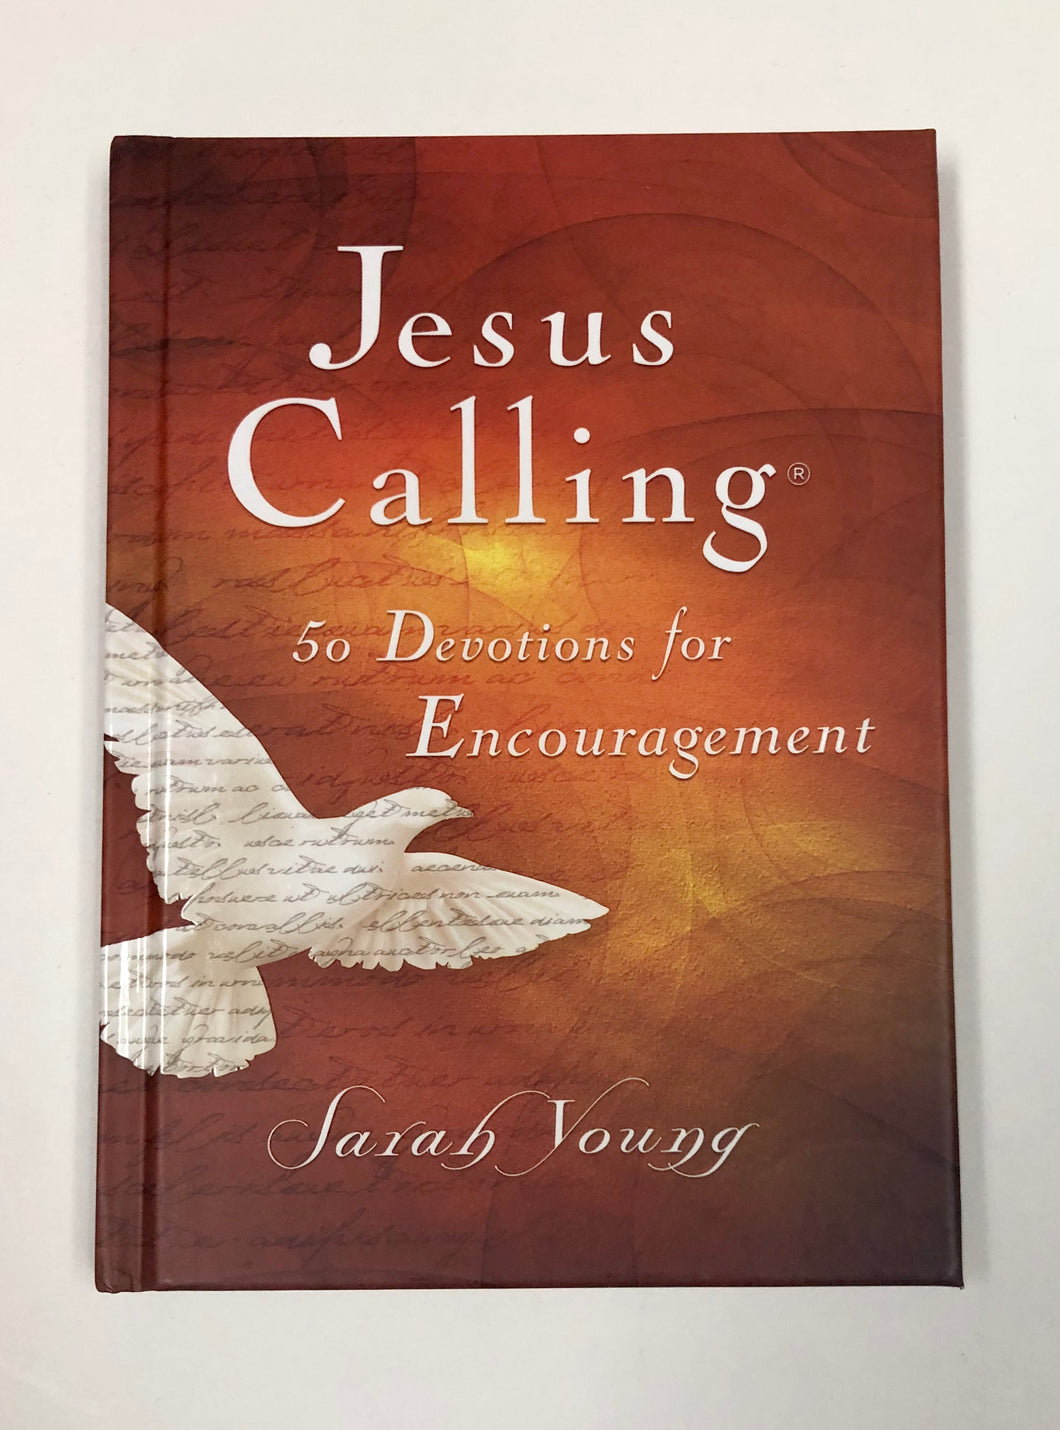 Jesus Calling - 50 Devotions for Encouragement